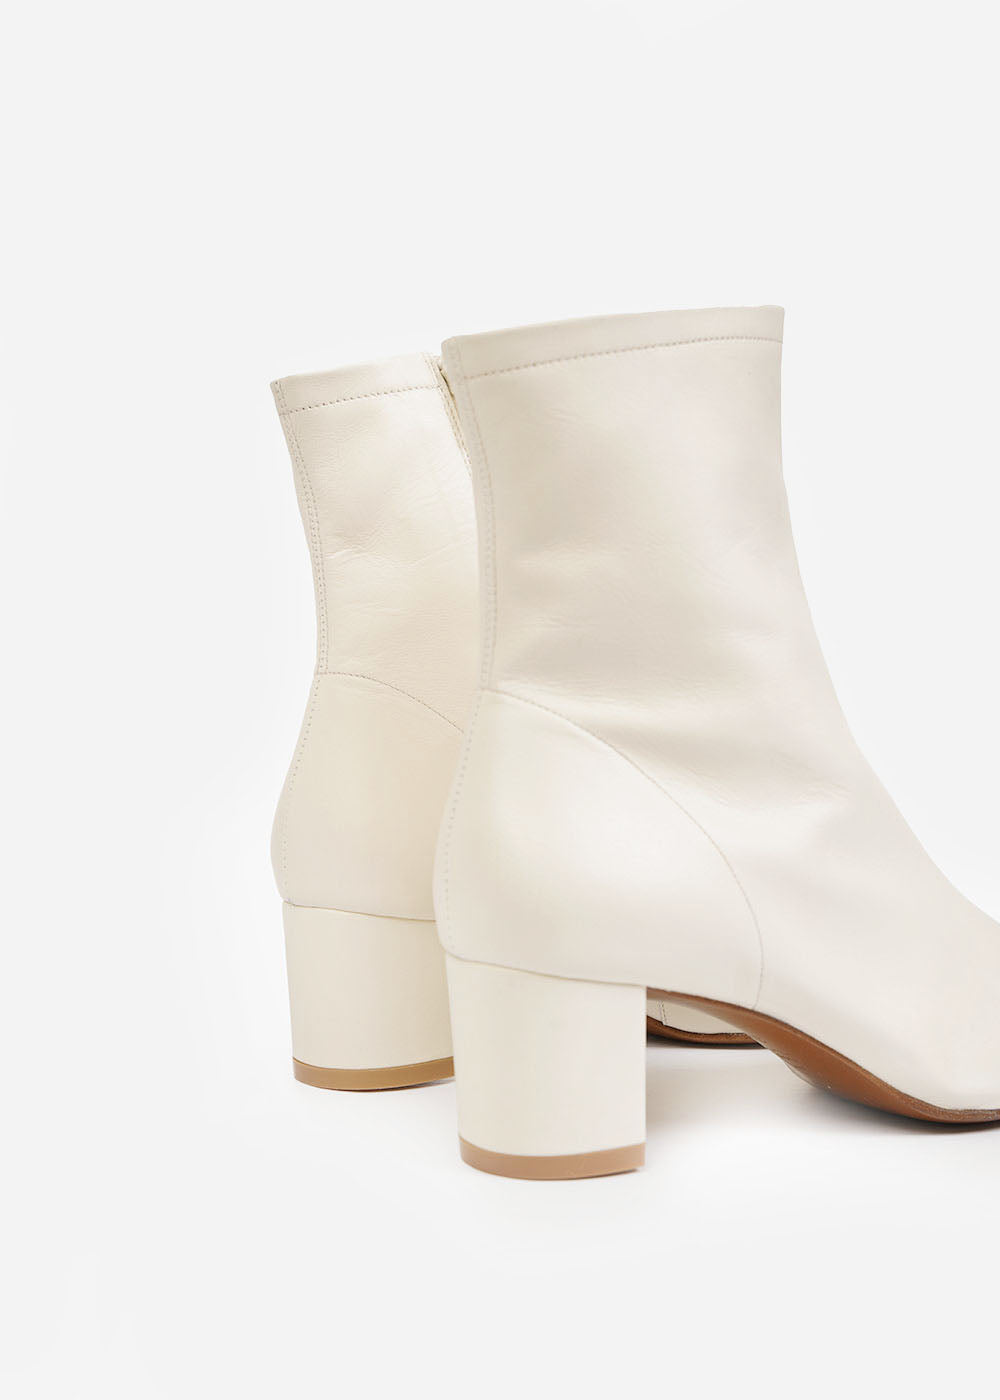 Sofia Boots in White by BY FAR – New